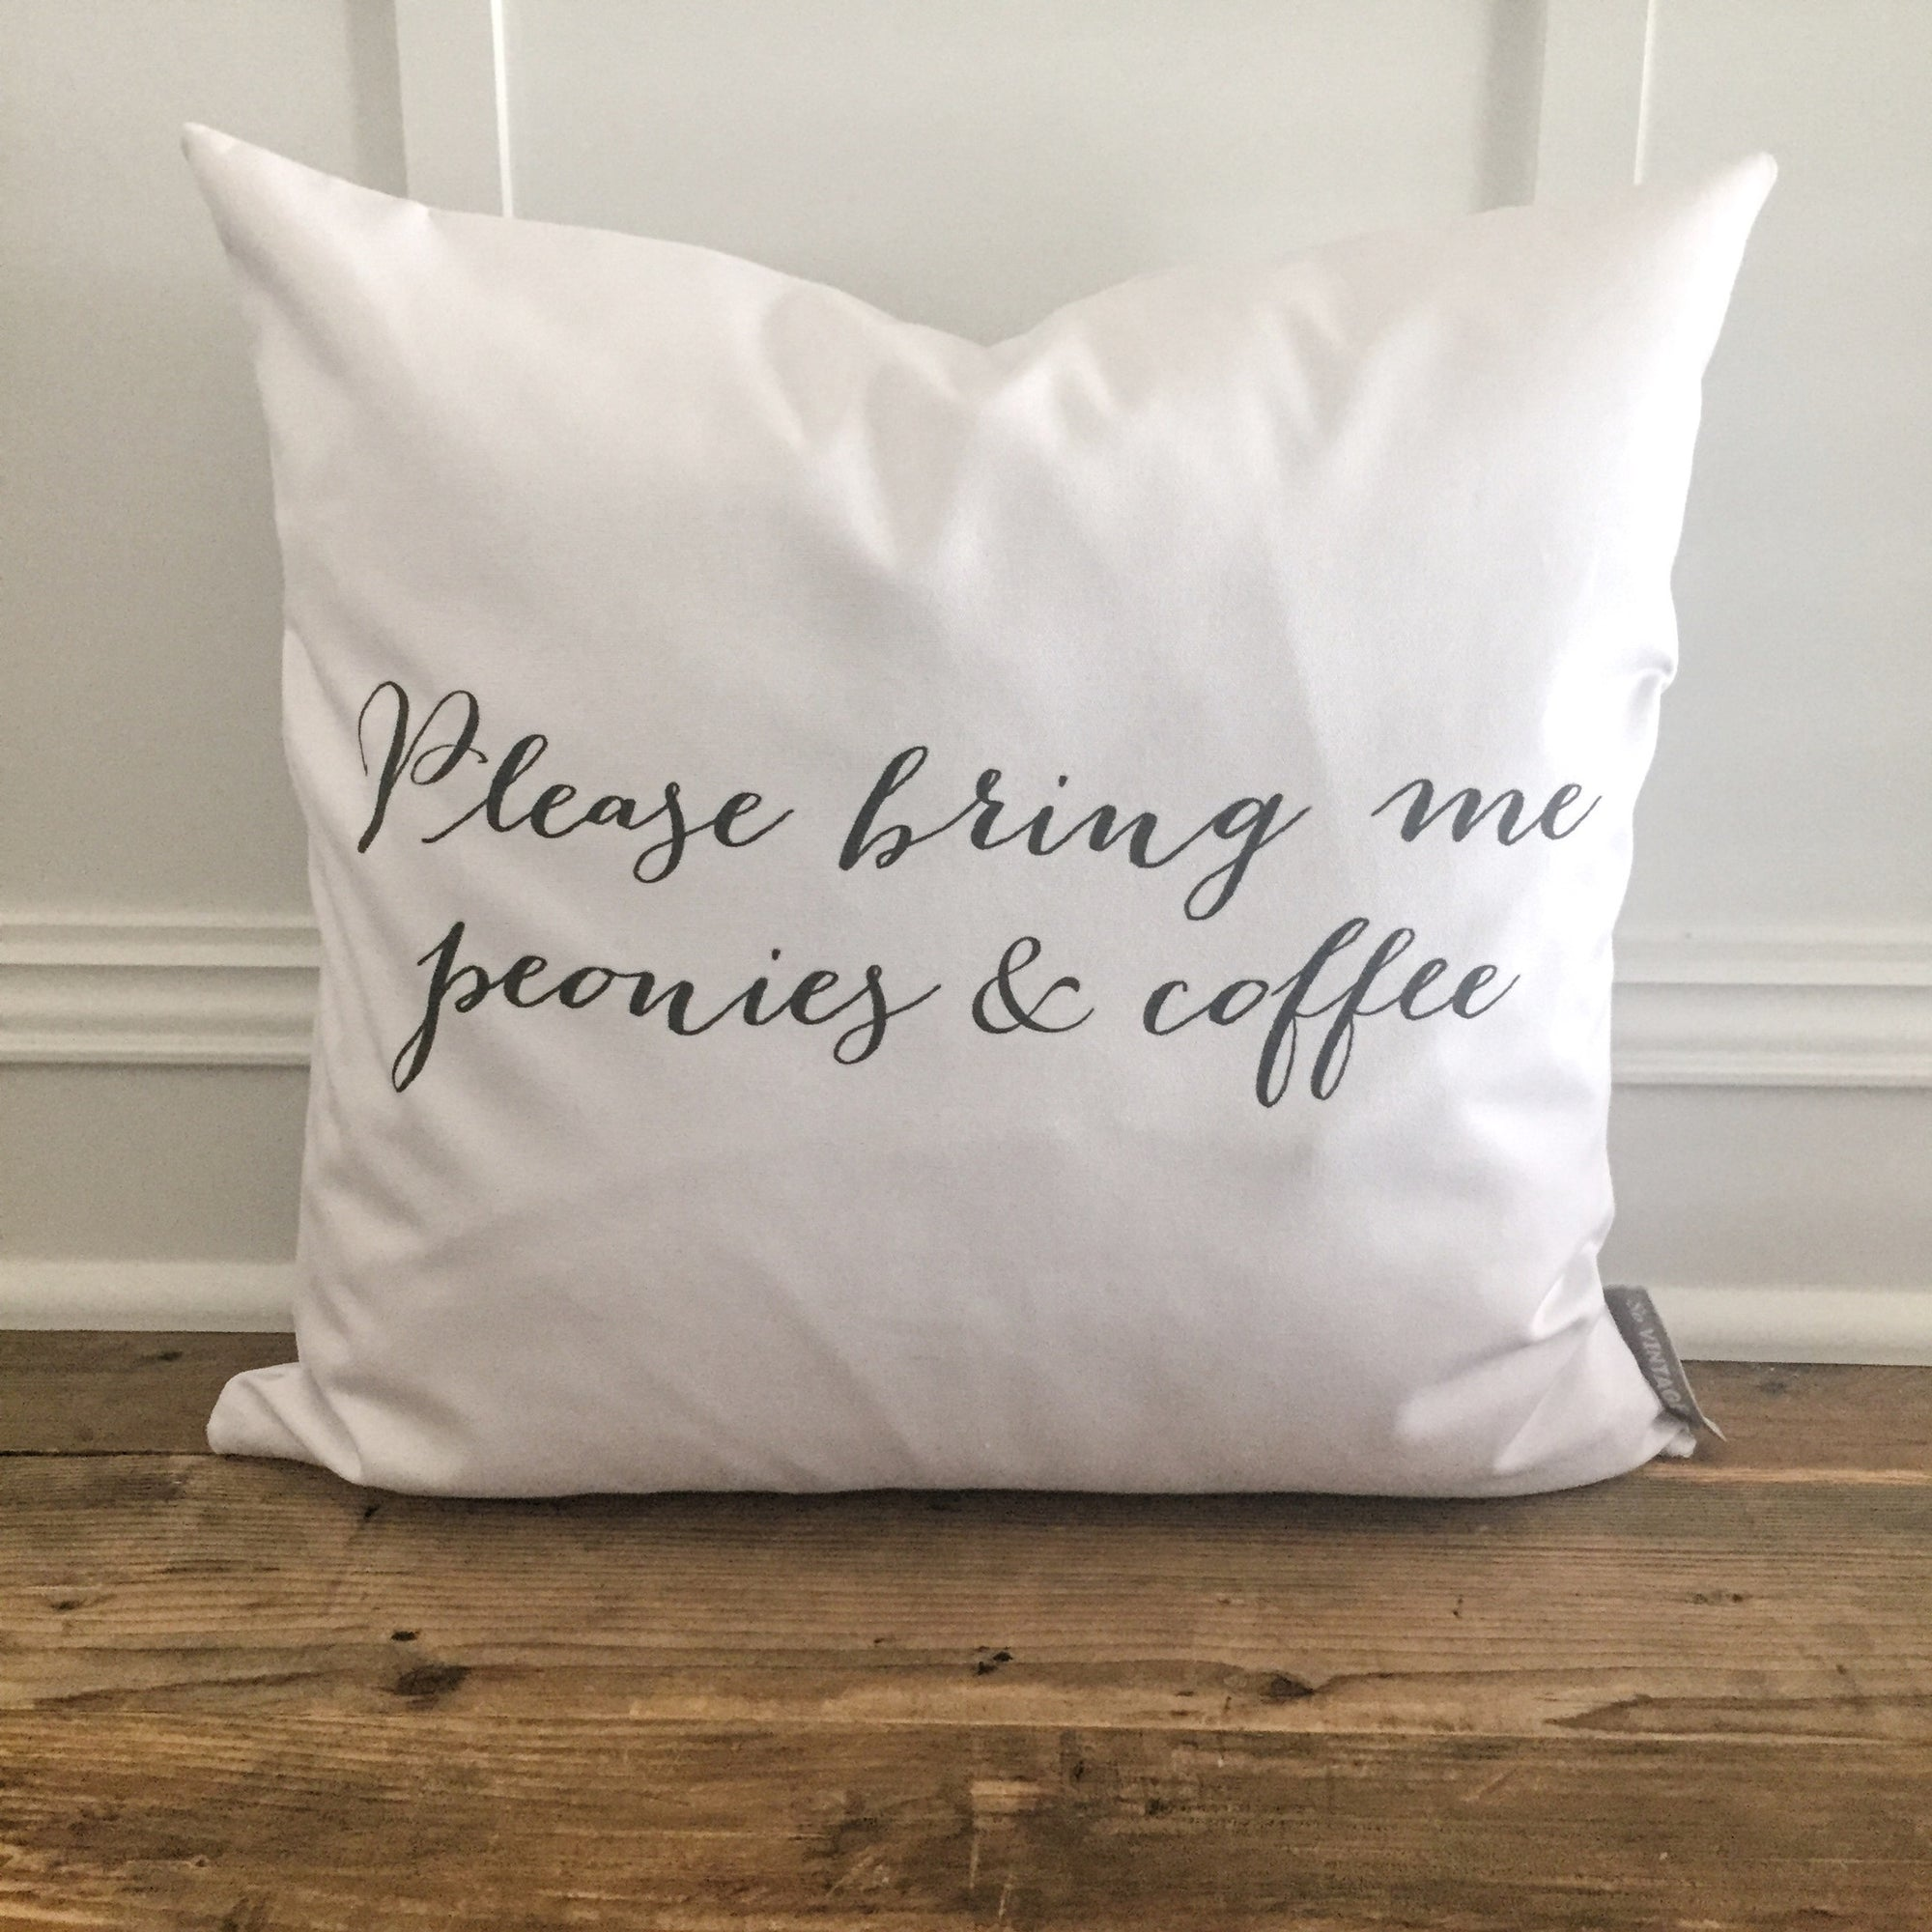 Peonies & Coffee Pillow Cover - Linen and Ivory